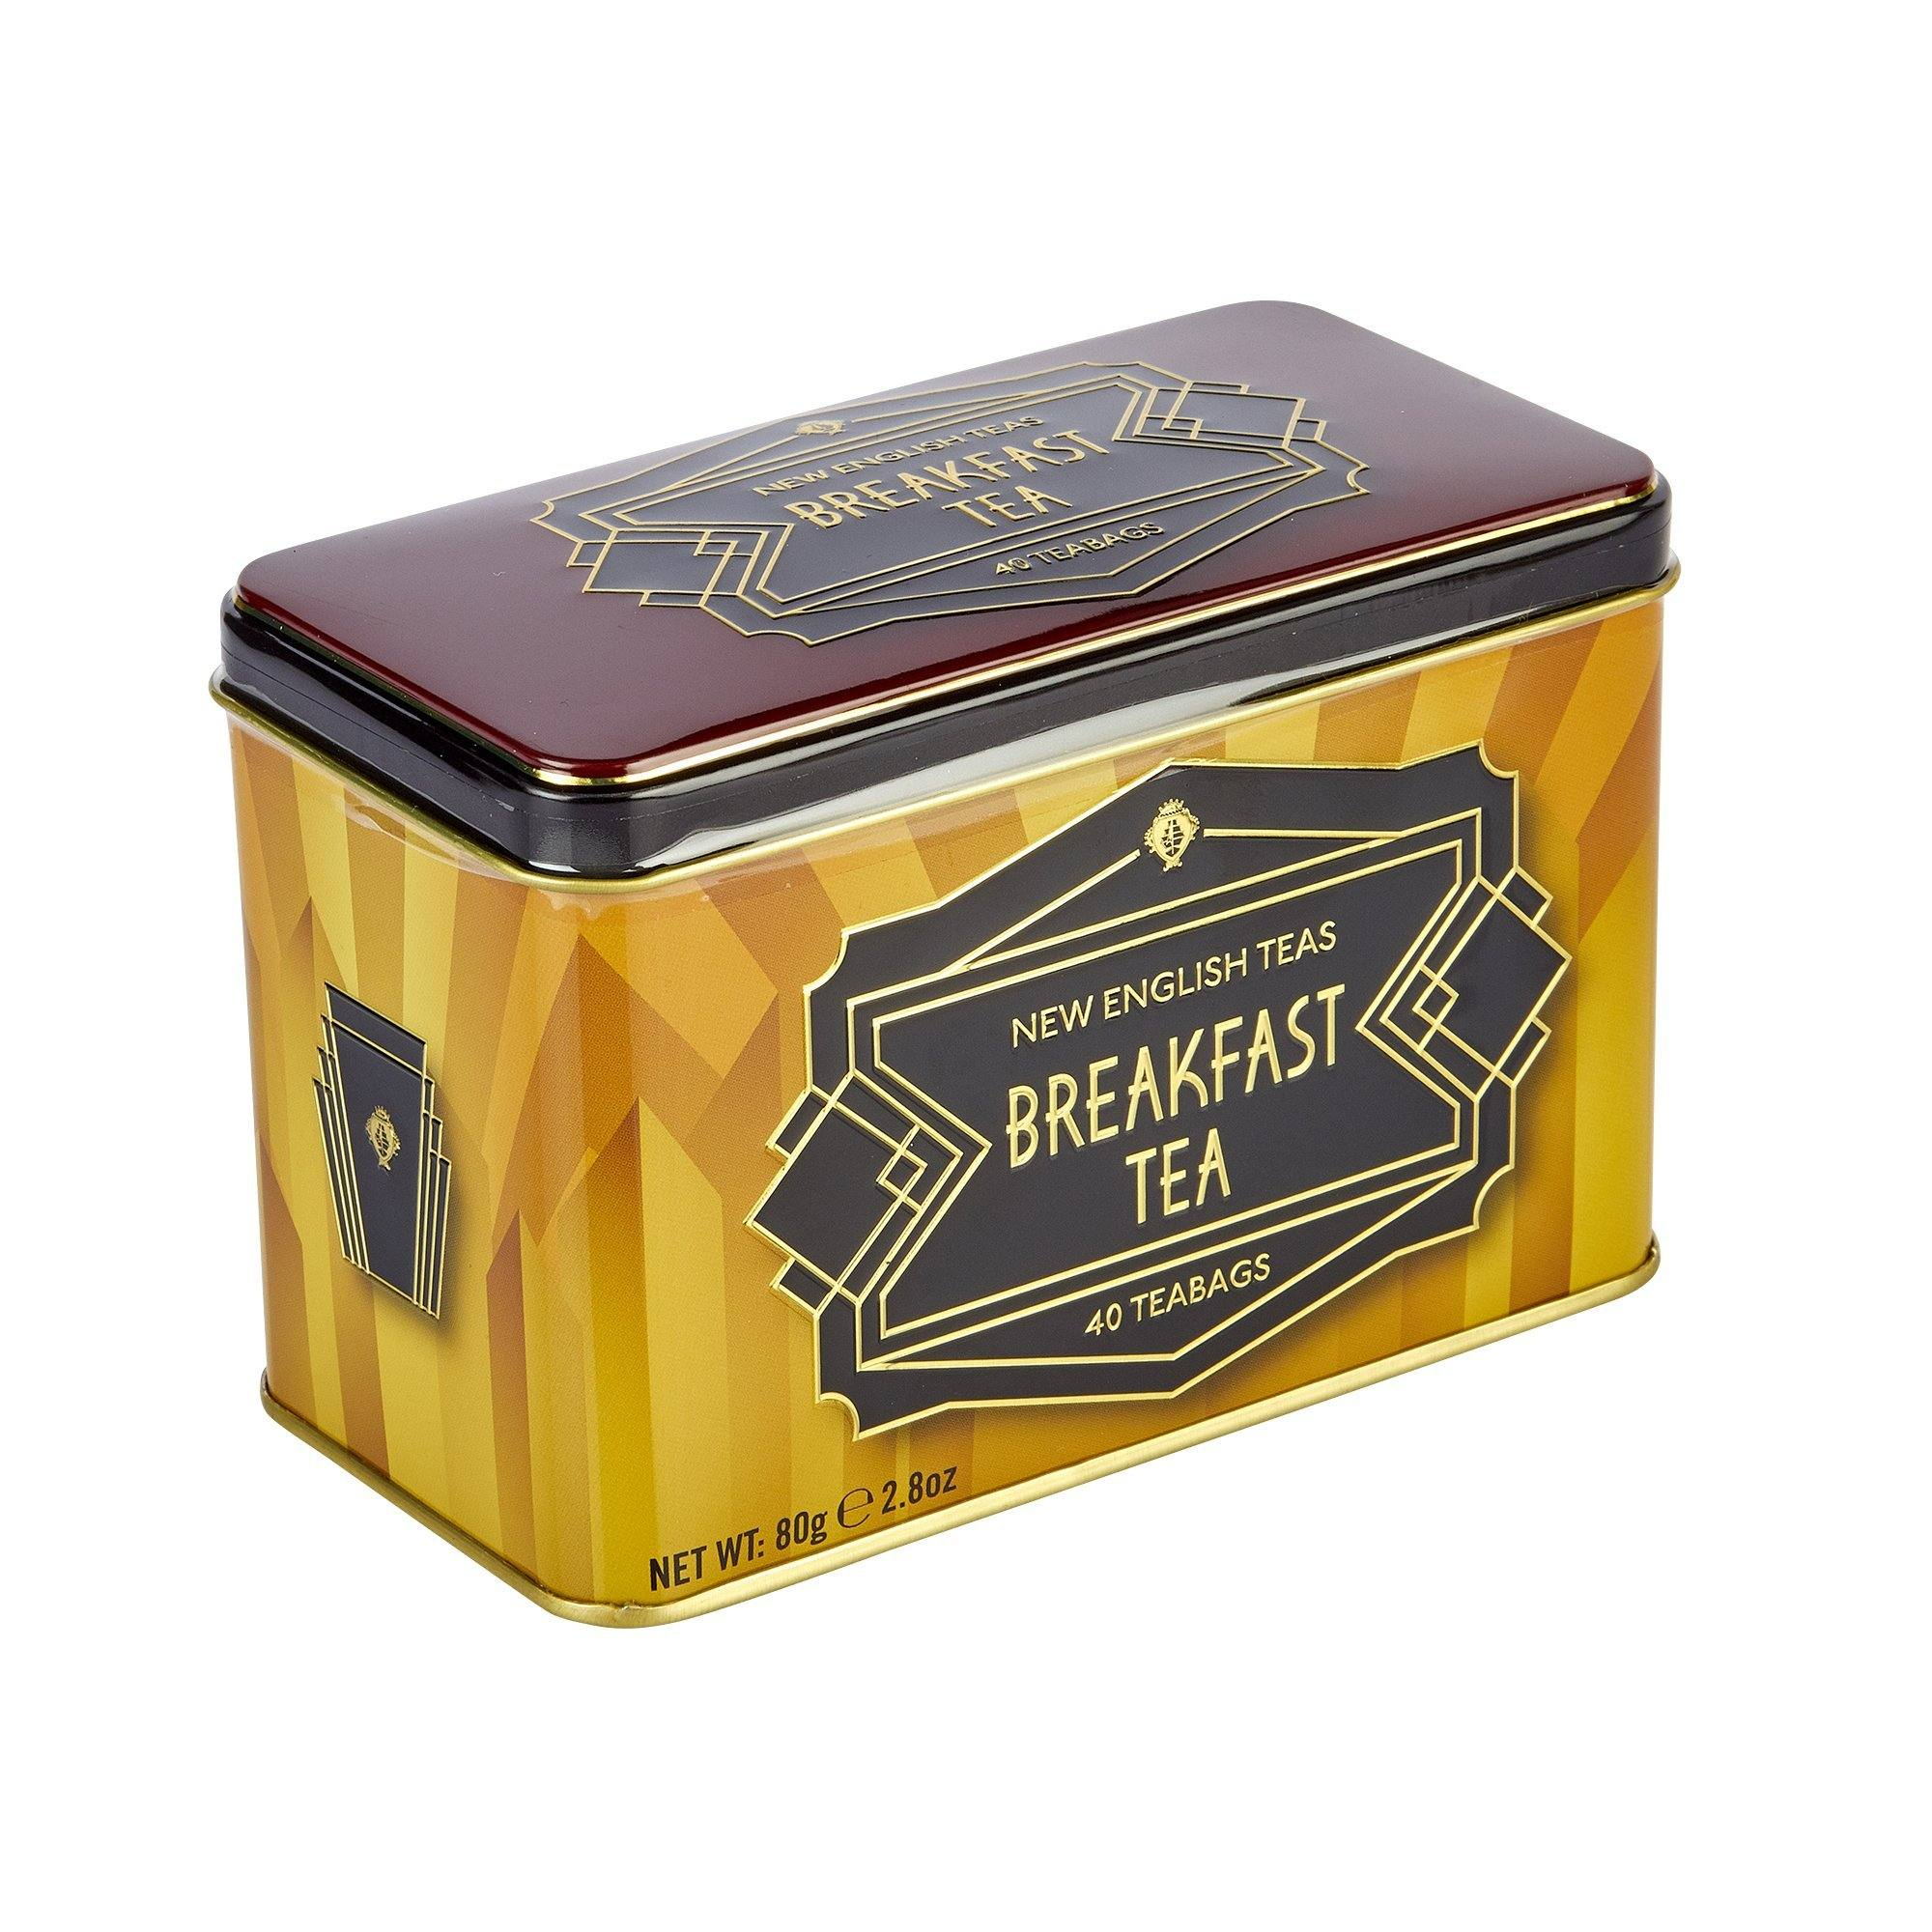 New English Teas Art Deco English Breakfast Tea Tin 40 Teabags Black Tea New English Teas